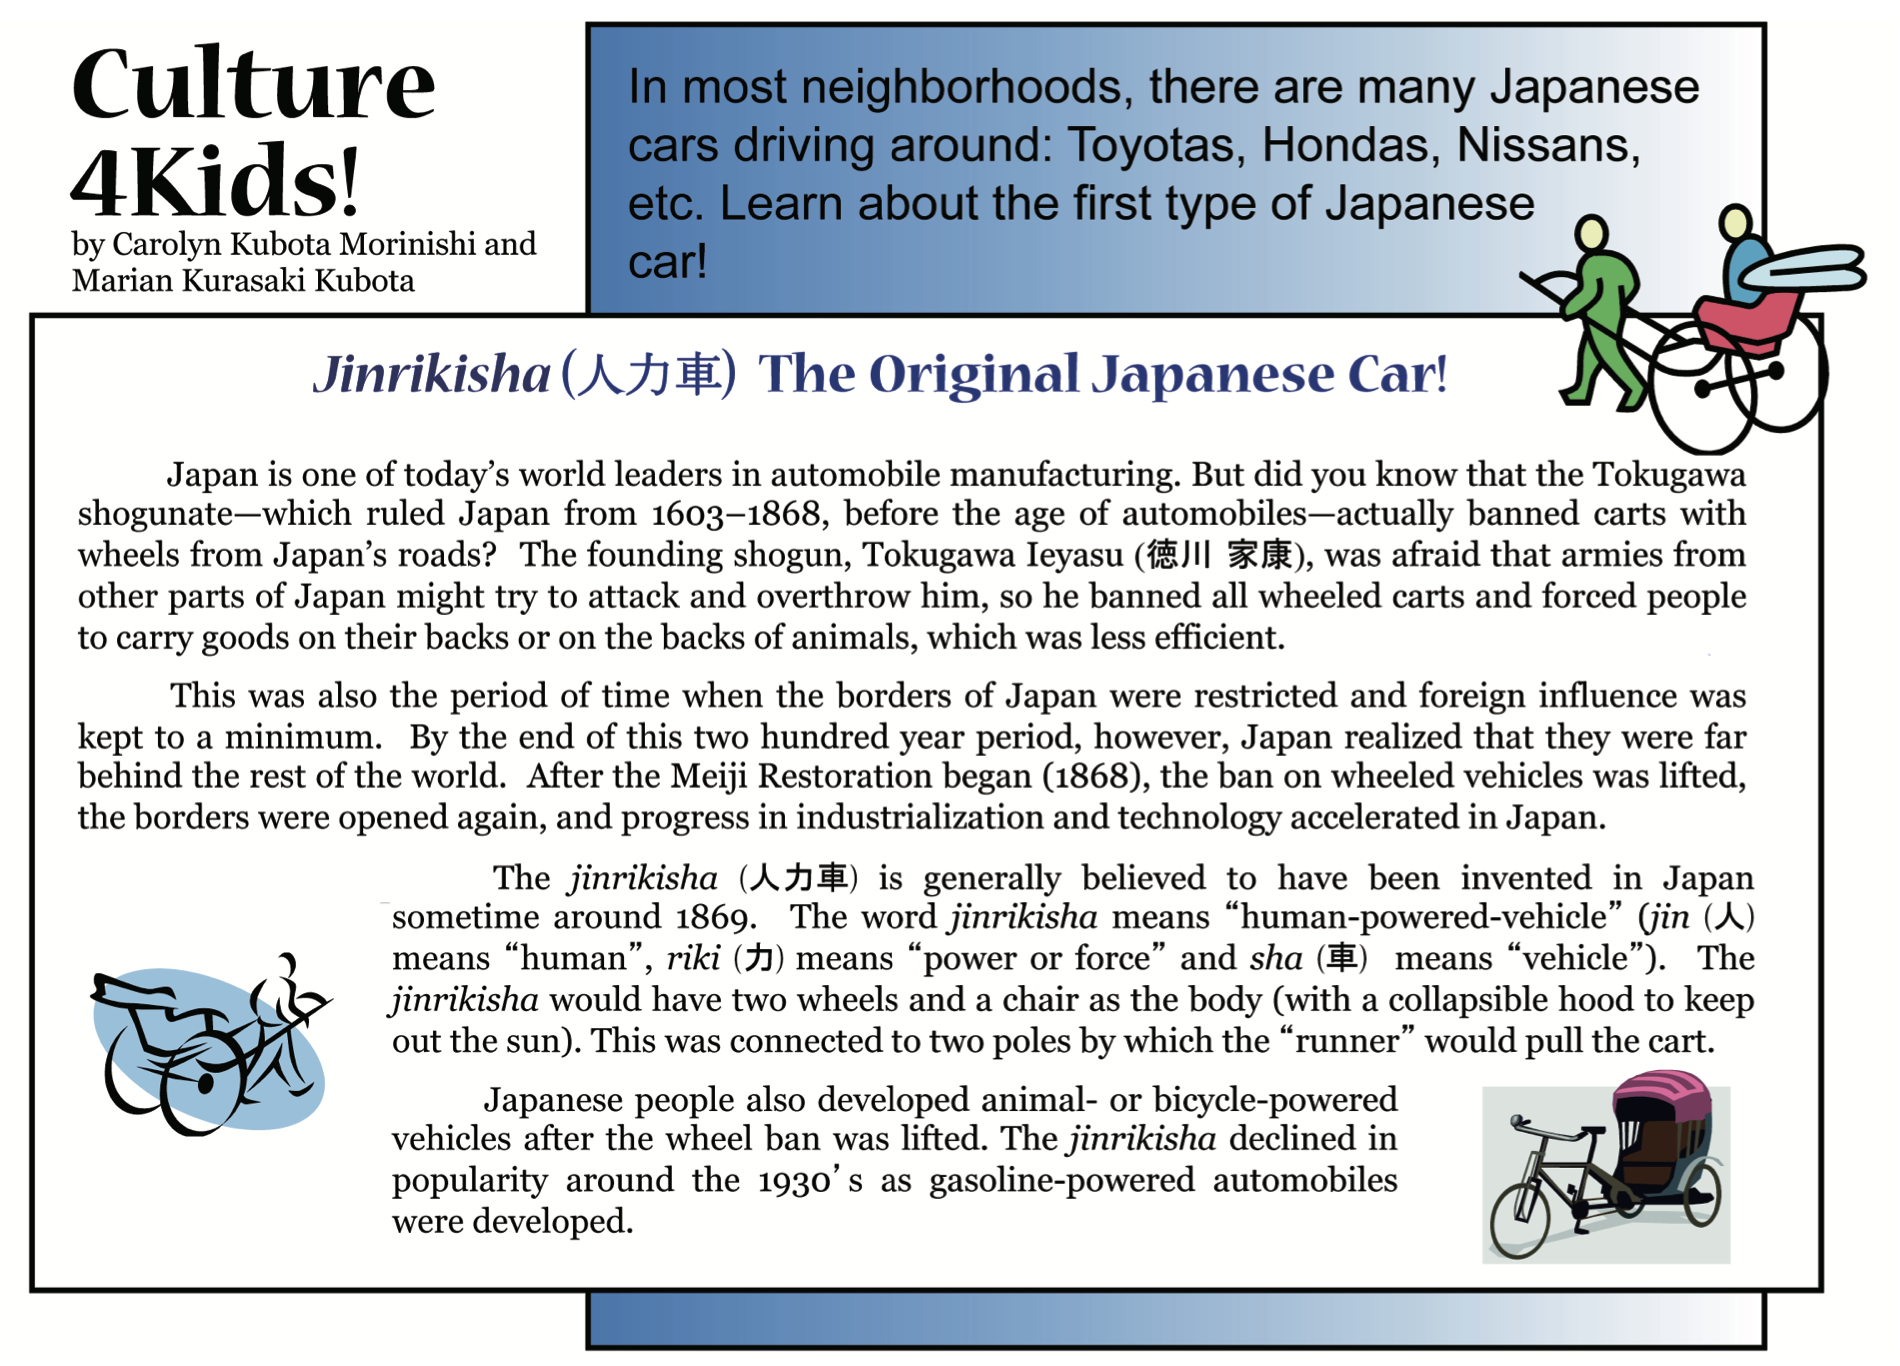 Culture4Kids activity for Herald's 2/7/2020 Issue 'Jinrikisha The Original Japanese Car!'